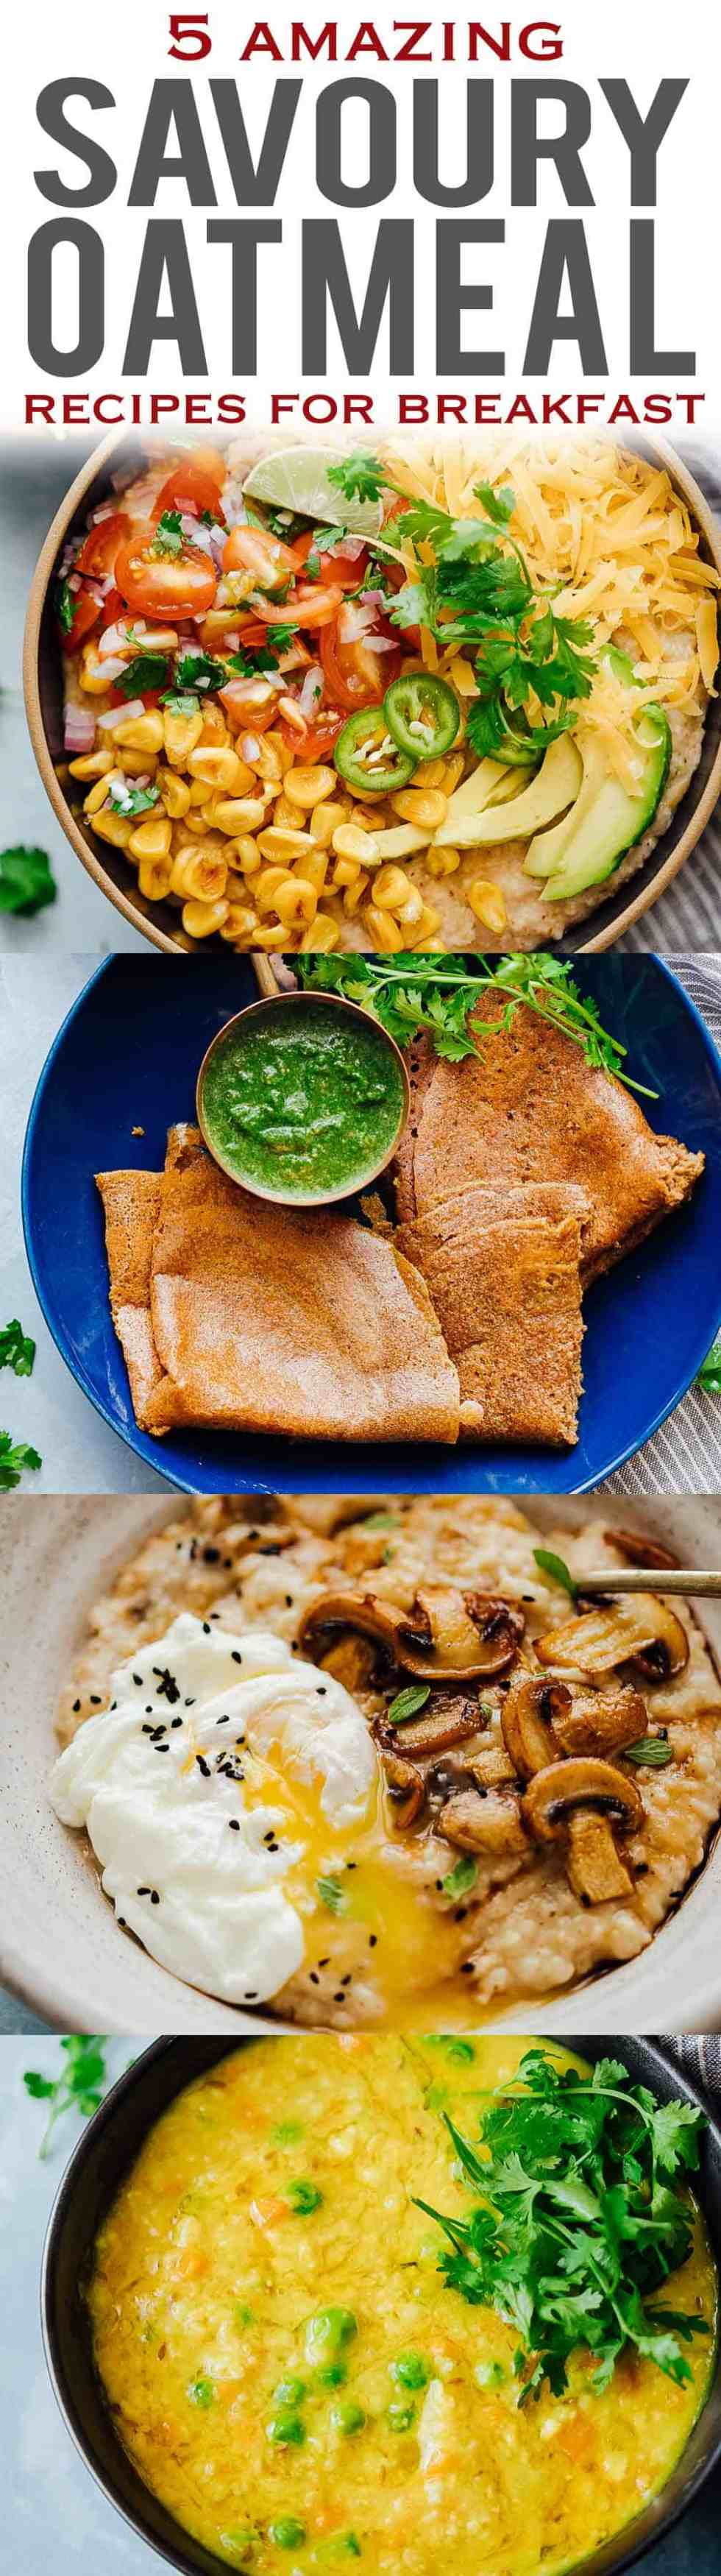 5 HEALTHY SAVORY OATMEAL recipes that you'll love for breakfast!Have you ever tried savory oatmeal before? Skip the sweet stuff and try these delicious recipes - mexican oatmeal, oat pancakes, garlic oats with egg, masala oats khichdi (porridge) and mushroom oats. These recipes are ready in fifteen minutes and perfect for breakfast or lunch!